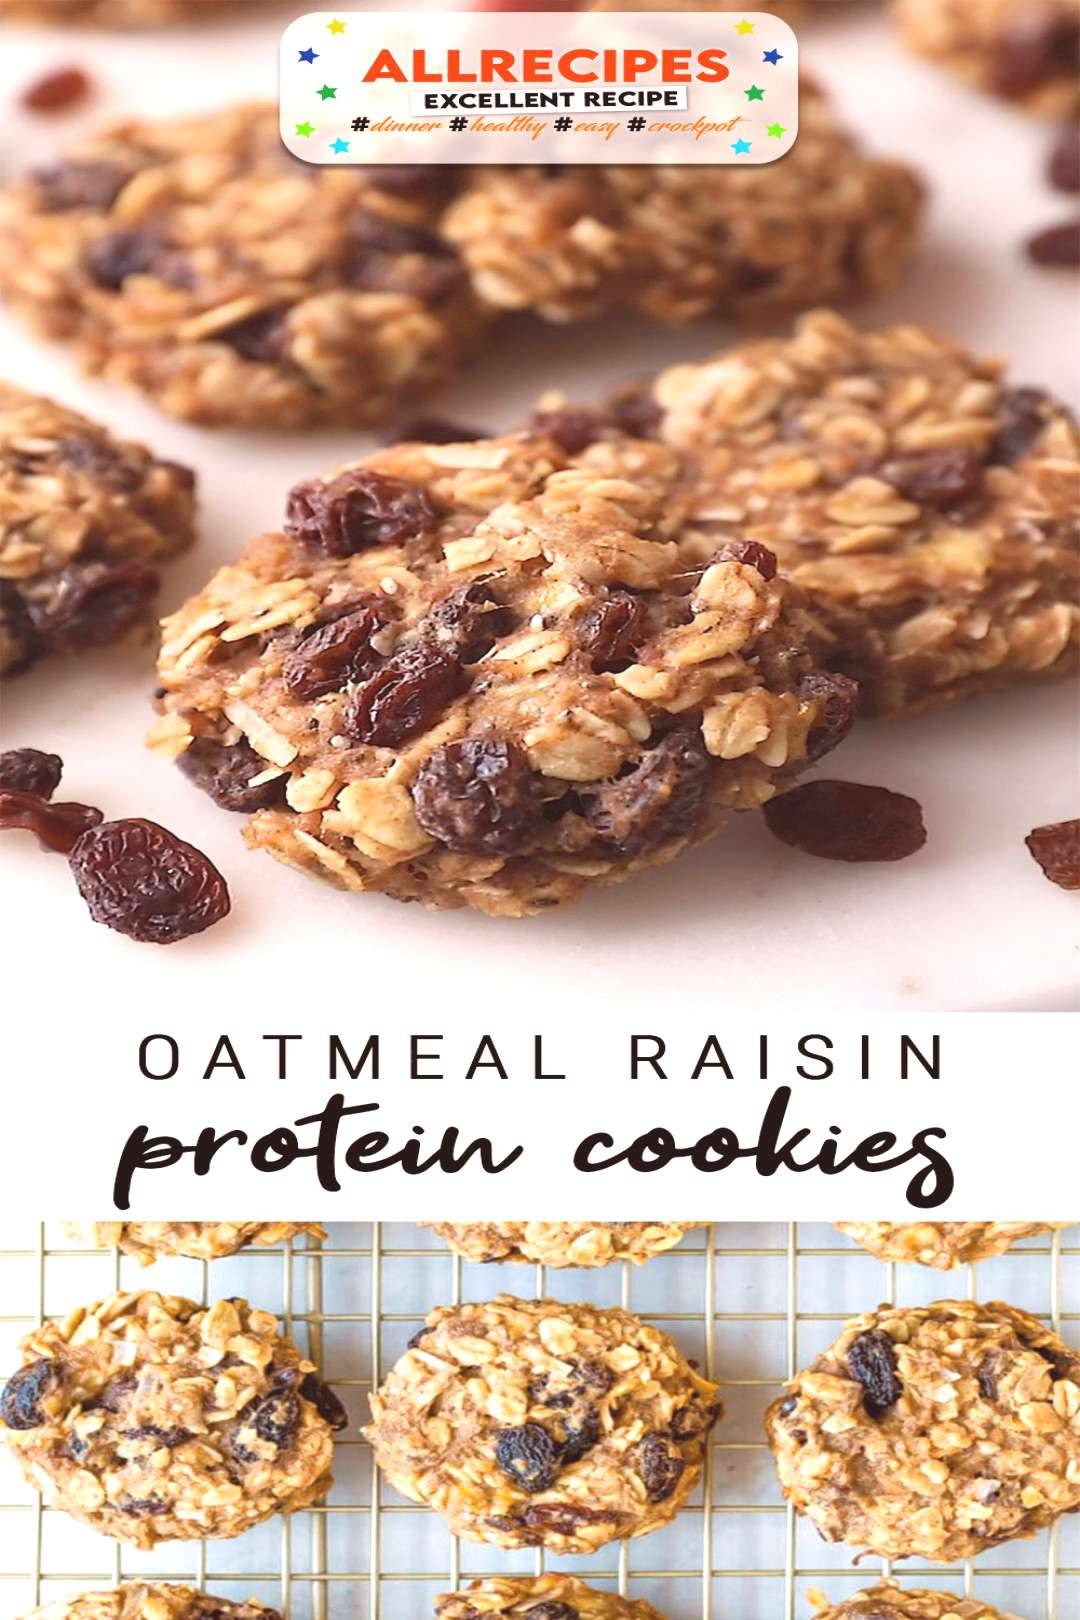 Healthy Oatmeal Raisin Protein Cookies | Easy Vegan Recipe - - Made without any processed sugar or